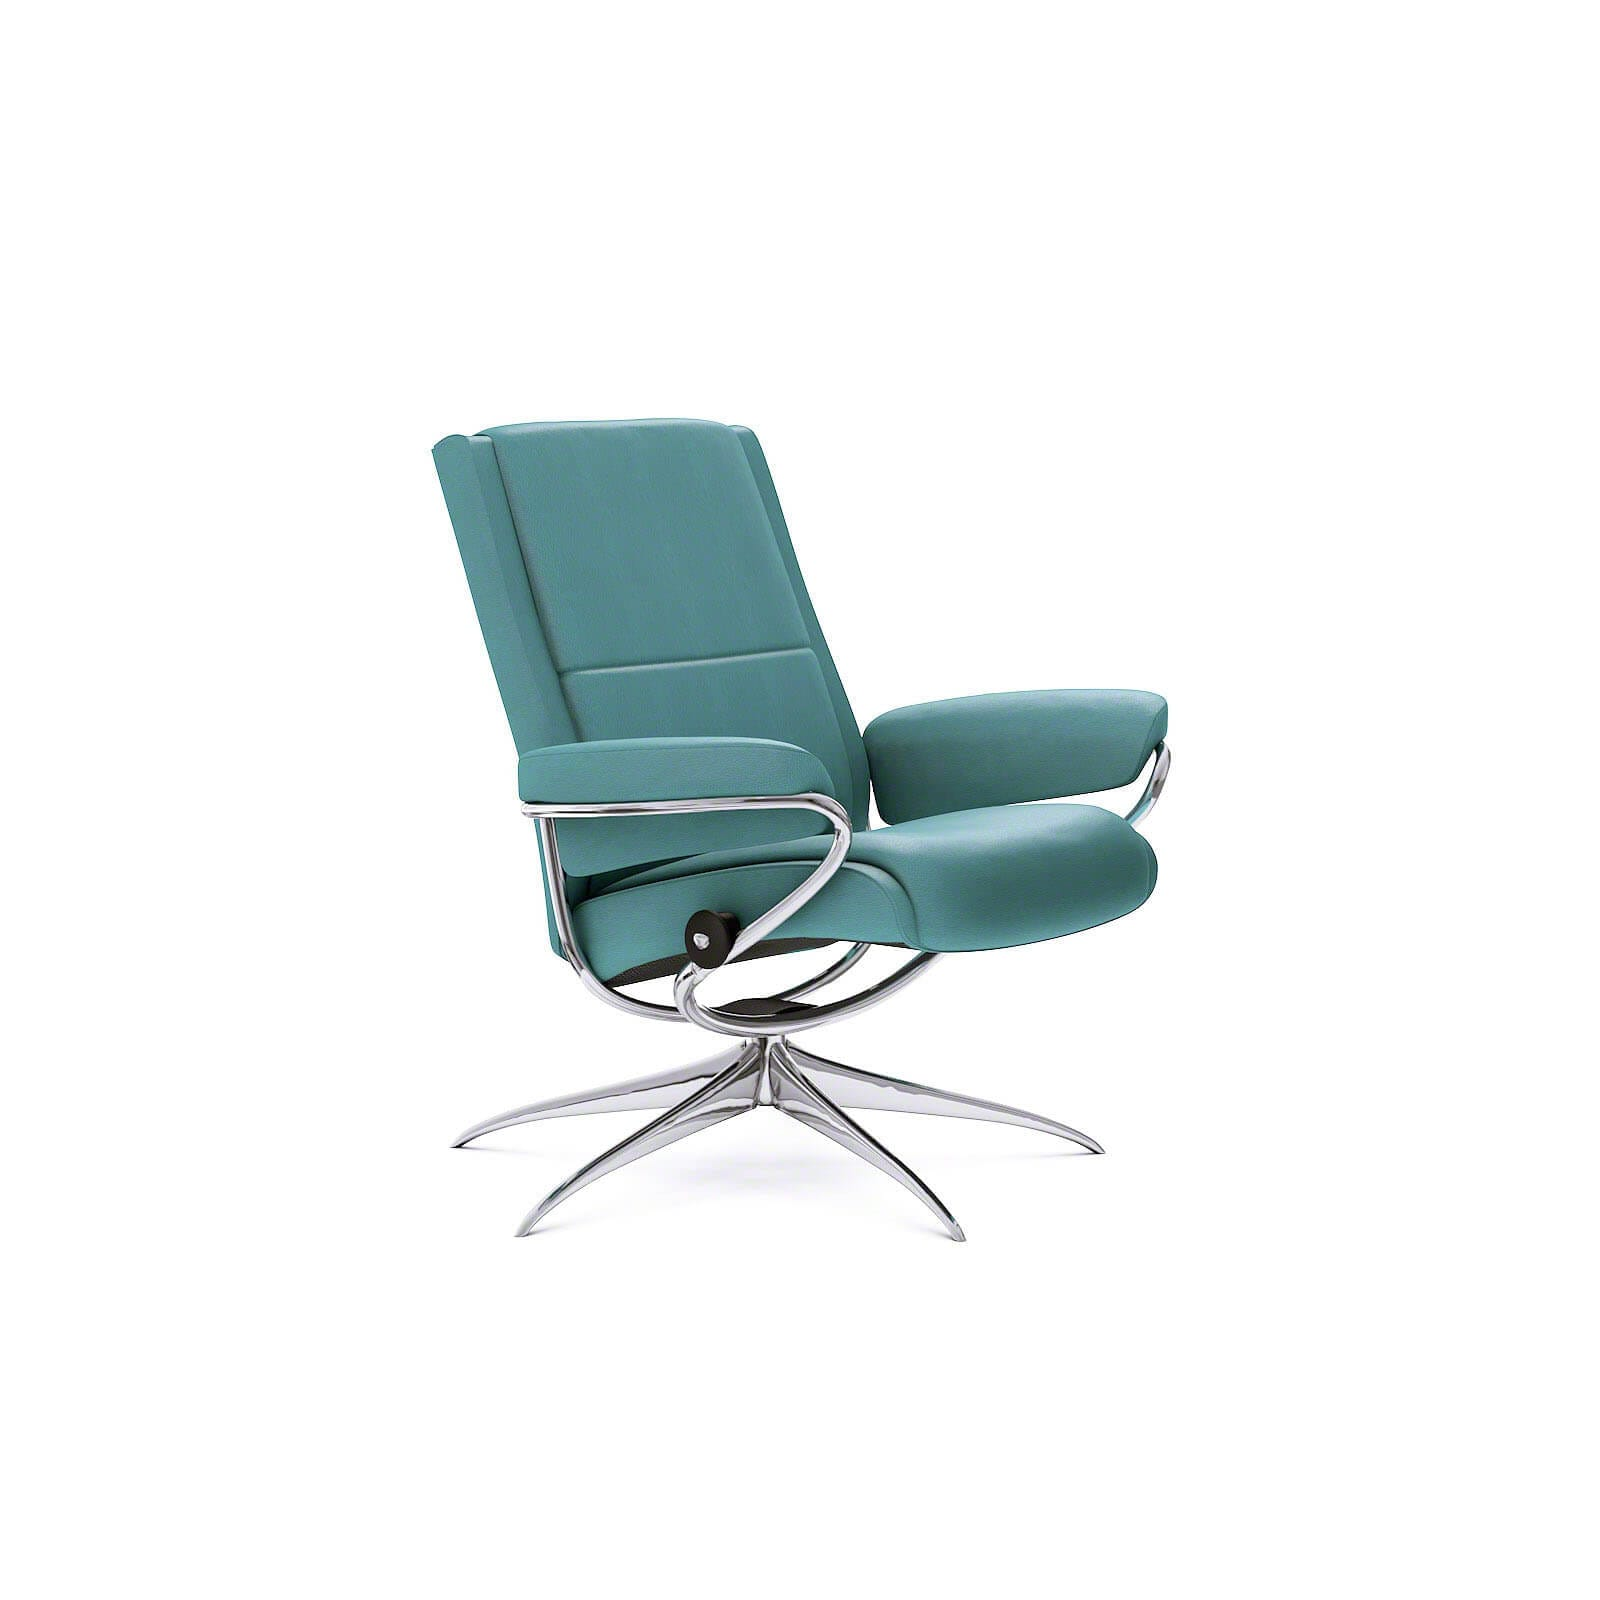 Sessel Aqua Stressless Paris Sessel Paloma Aqua Green Chrom Stressless